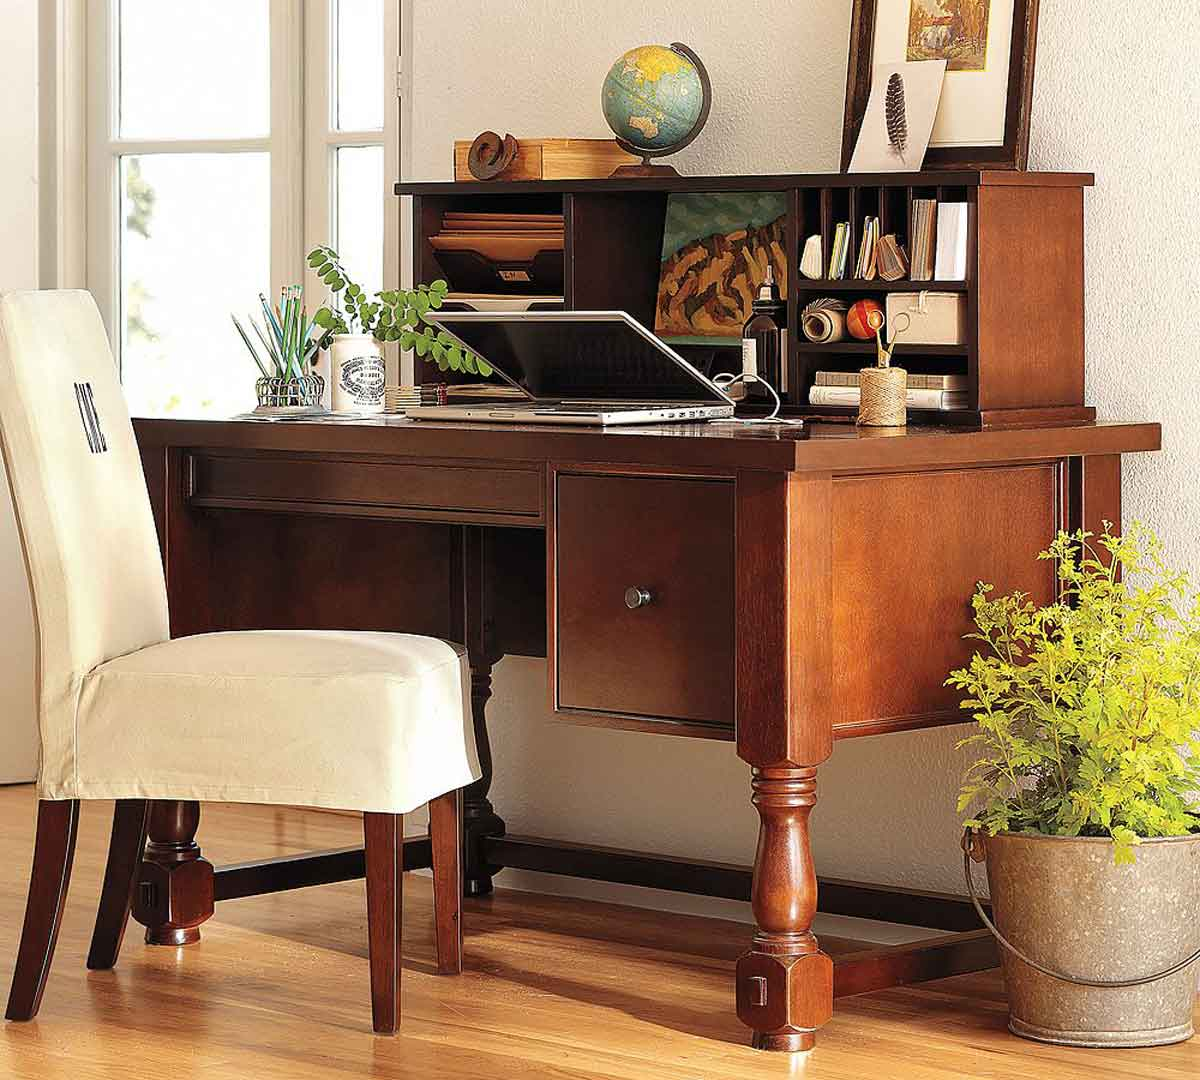 Home office design ideas Modern home office ideas